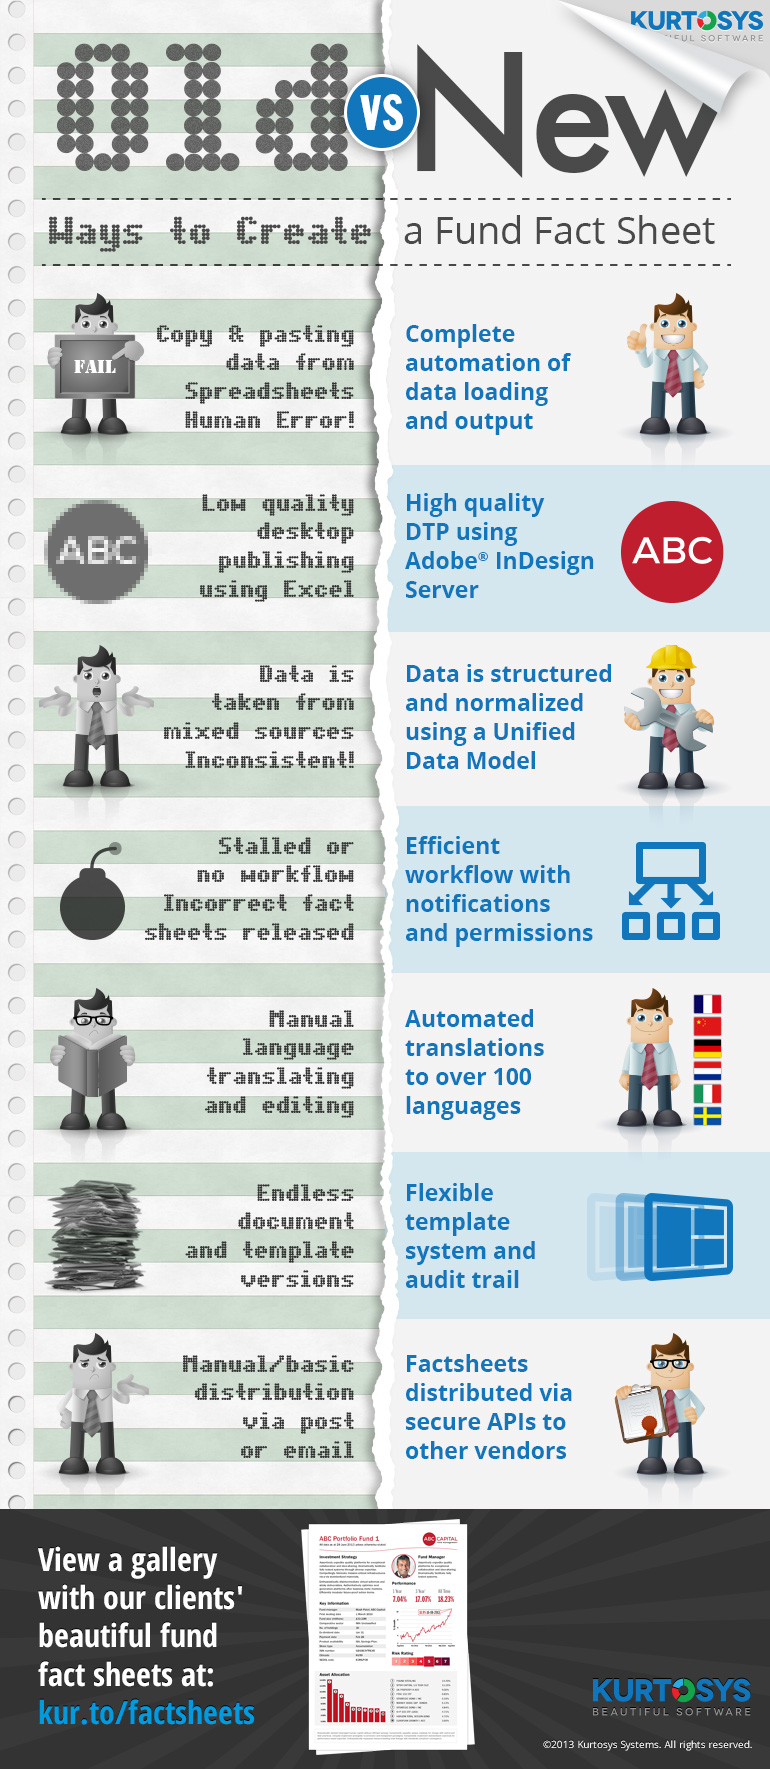 Old vs New Ways to Create a Fund Fact Sheet [INFOGRAPHIC] 1